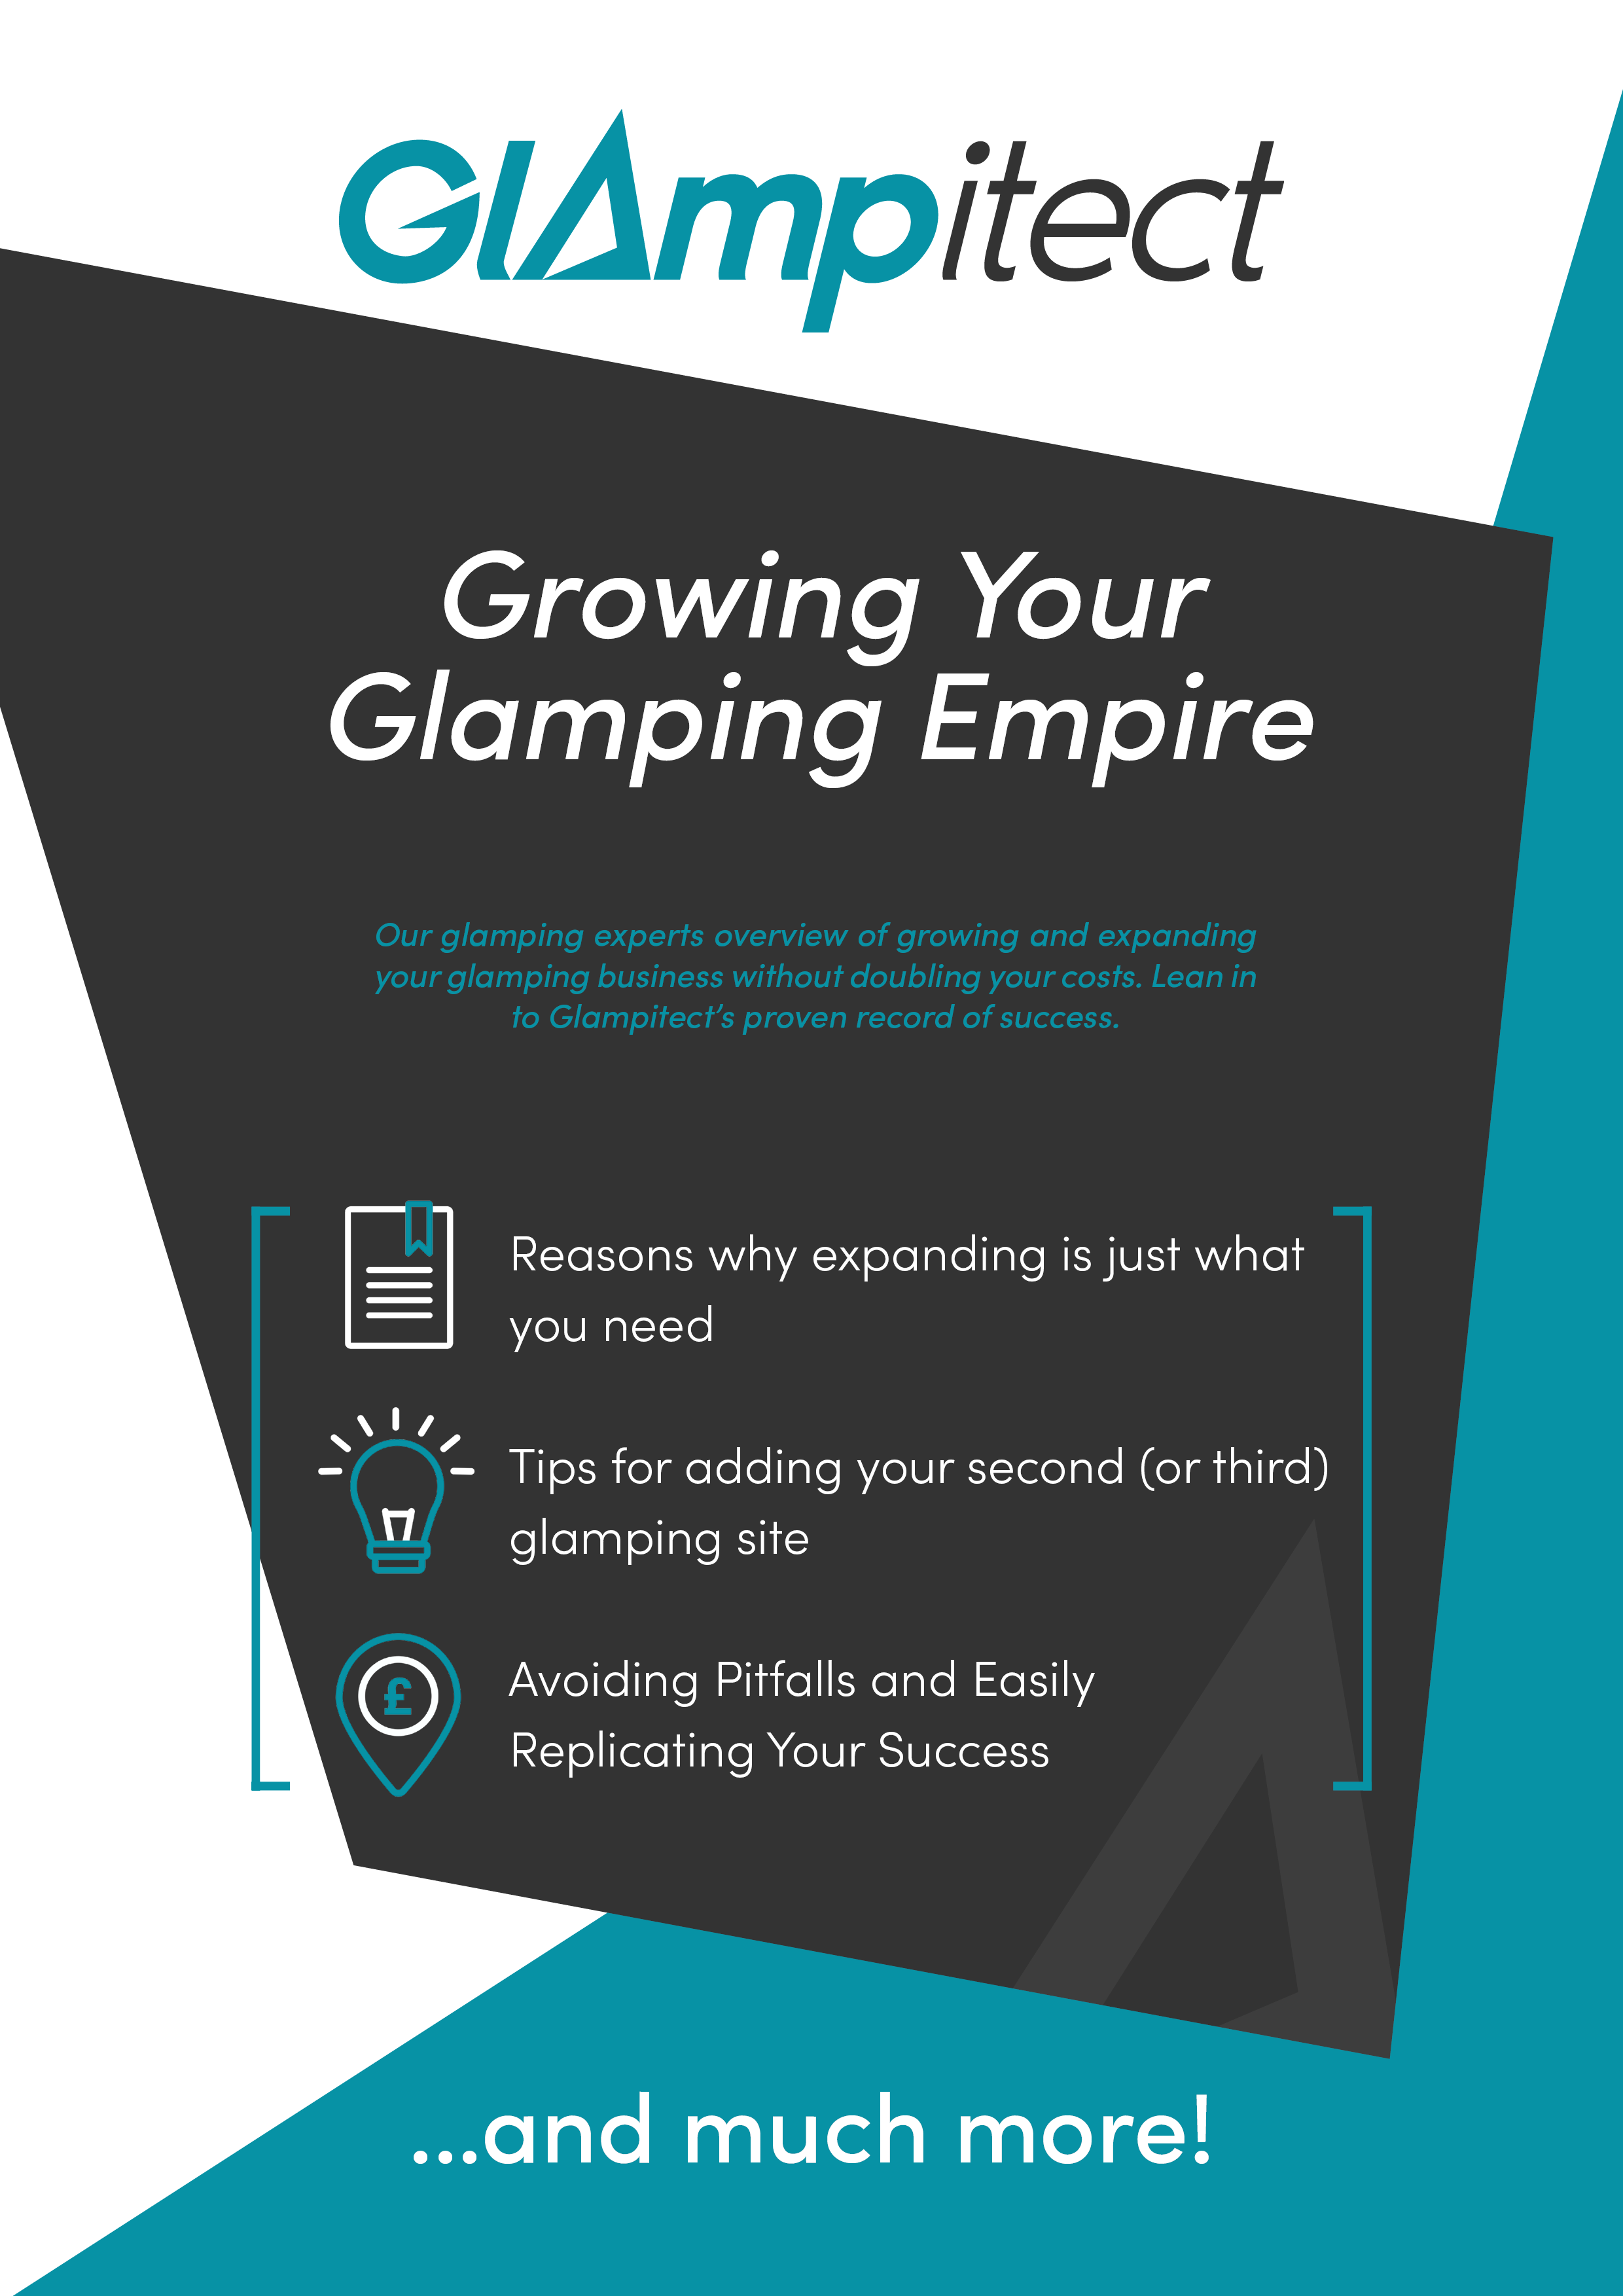 Growing Your Glamping Empire - Glampitect - Guides Front Page Designs